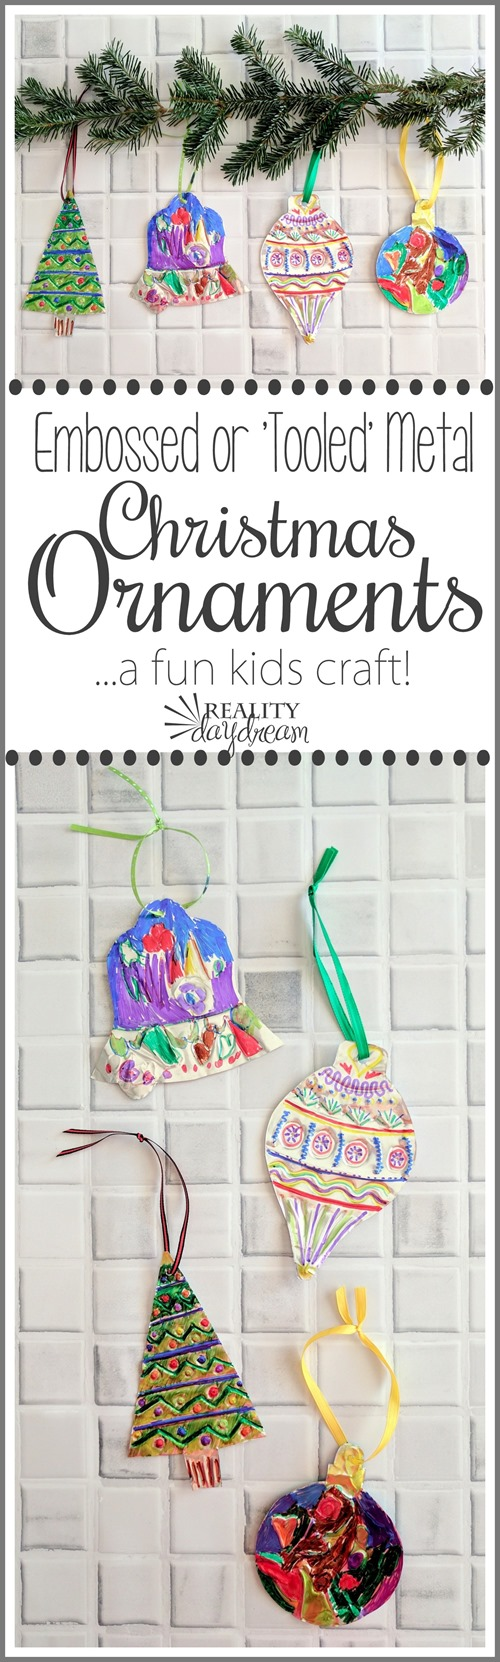 These 'Tooled' (or embossed) Metal Christmas ornaments are FUN to make... for any age! {Reality Daydream}